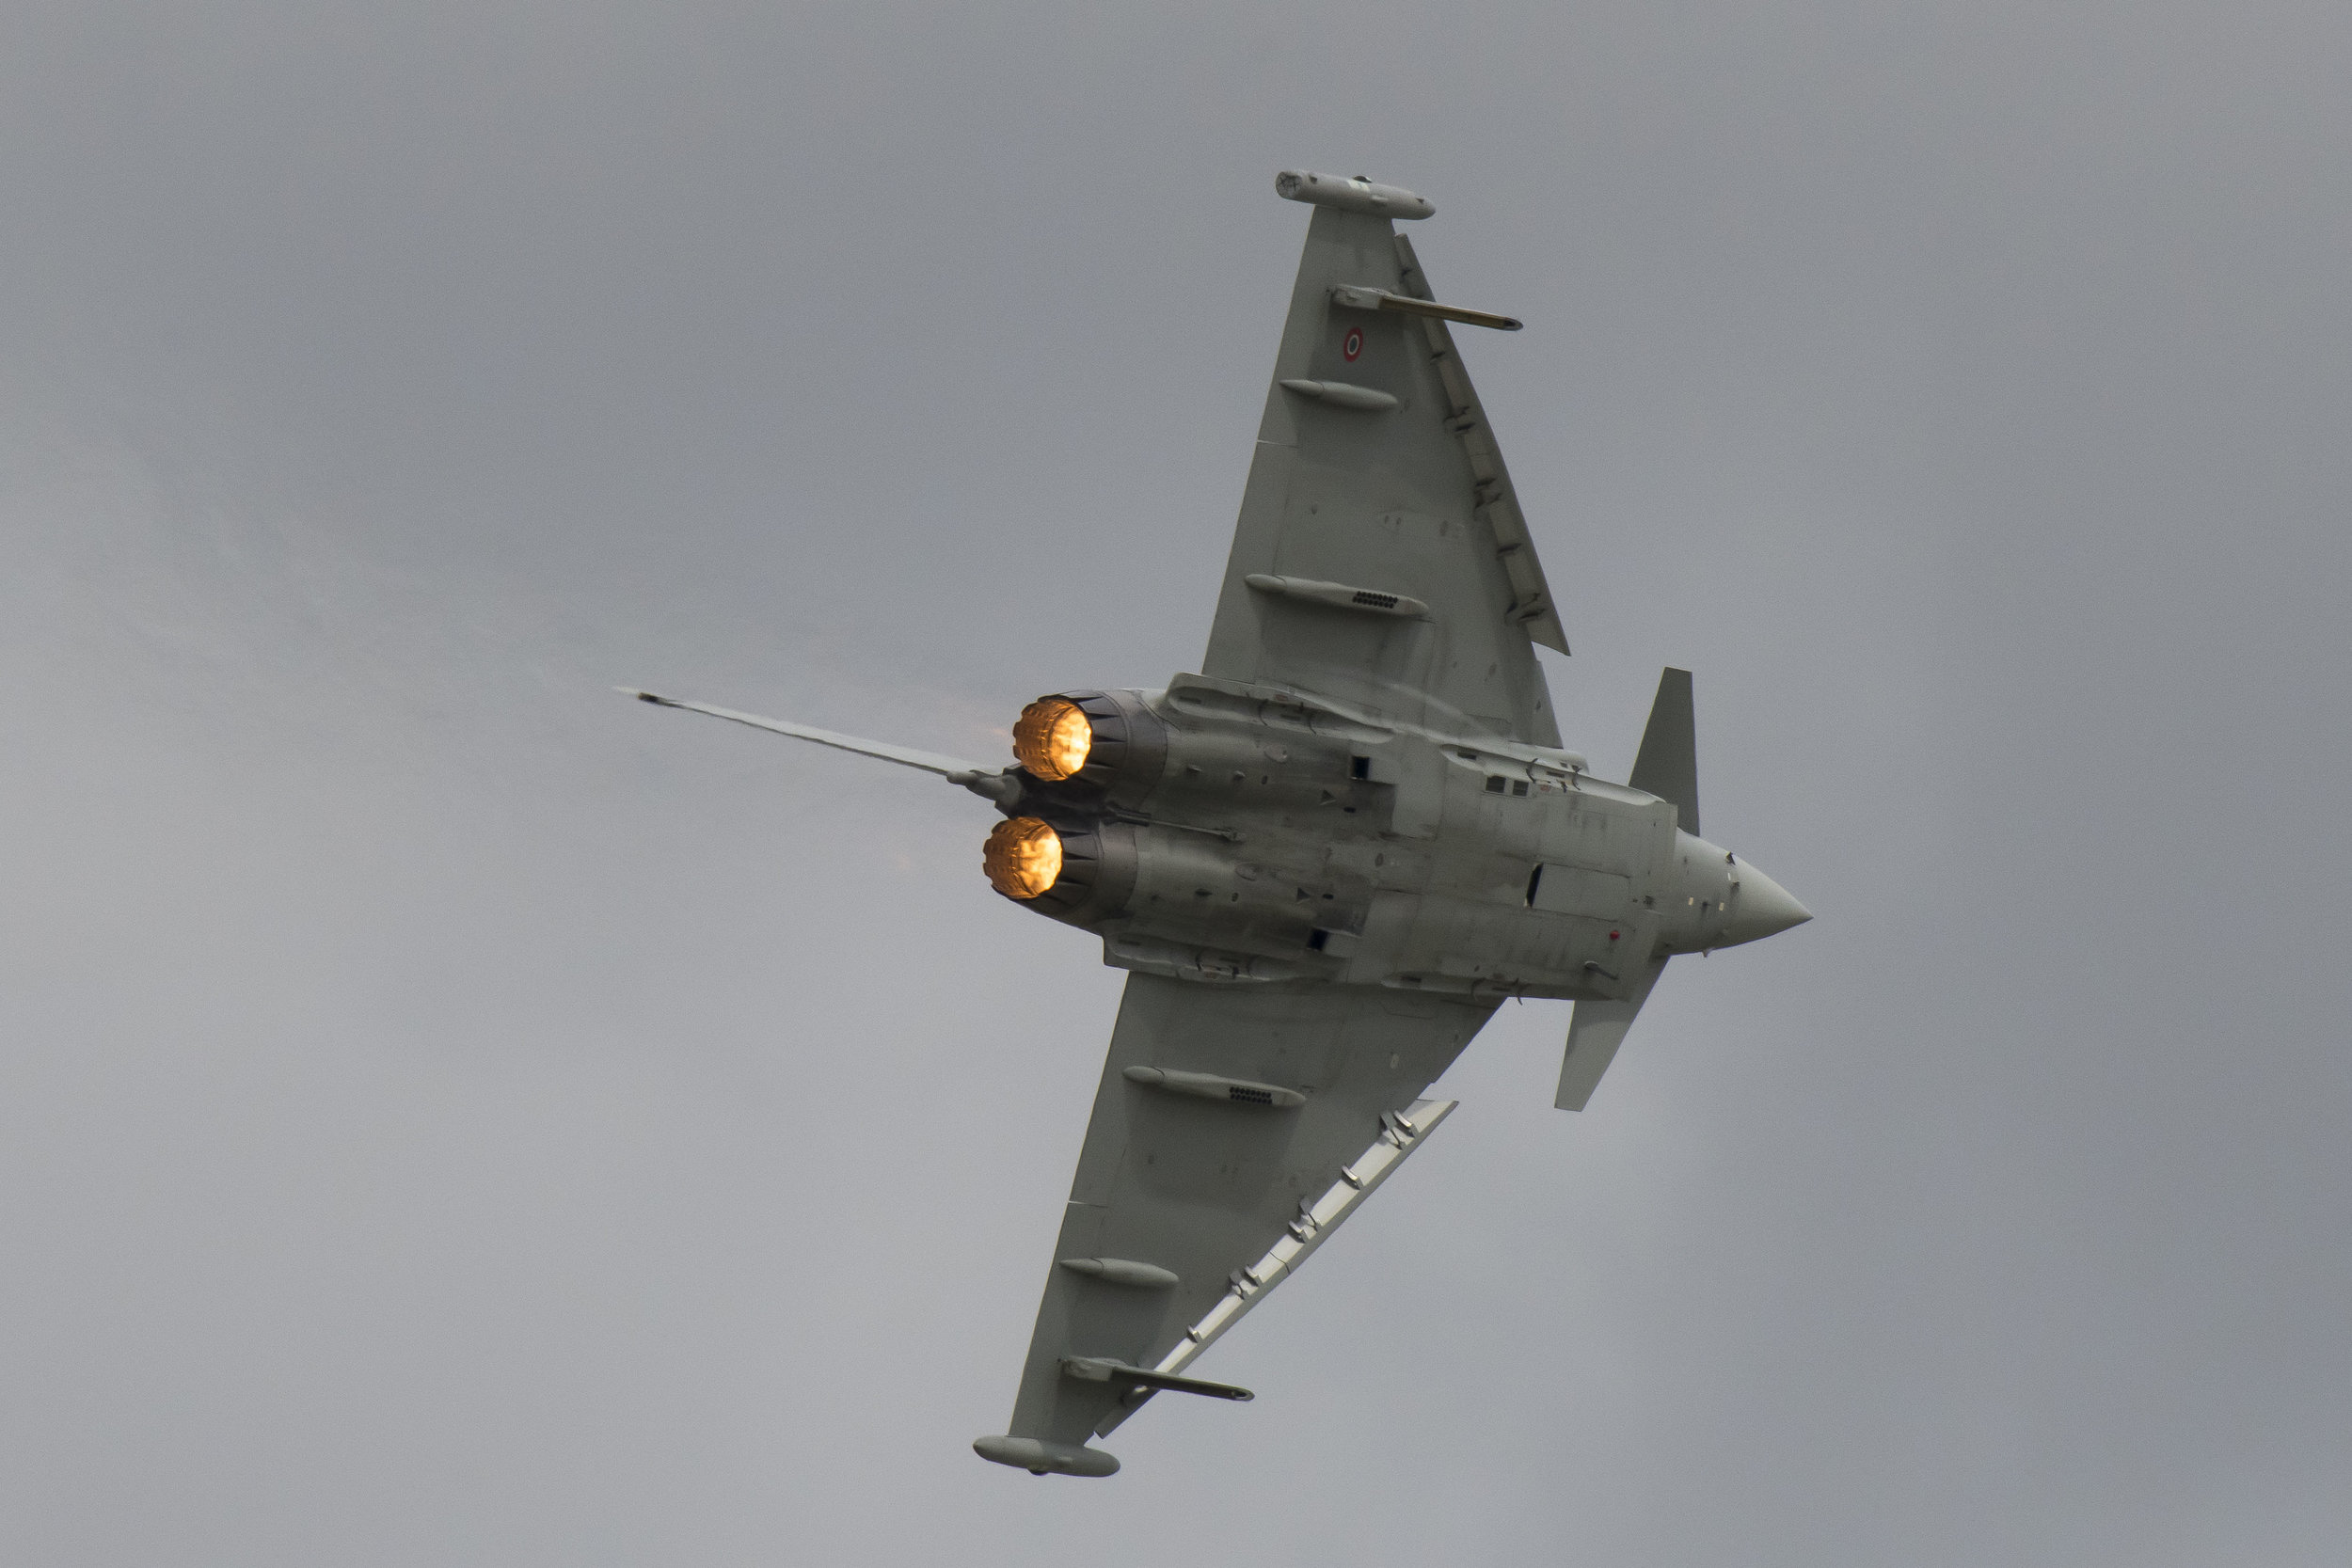 FAIRFORD, ENGLAND - JULY 21: An Italian Air Force F-2000 Typhoon performs during the International Air Tattoo at RAF Fairford on July 21, 2019 in Fairford, England. The Royal International Air Tattoo (RIAT) is the world's largest military air show, held in support of The Royal Air Force Charitable Trust. (Photo by Matthew Horwood/Getty Images)